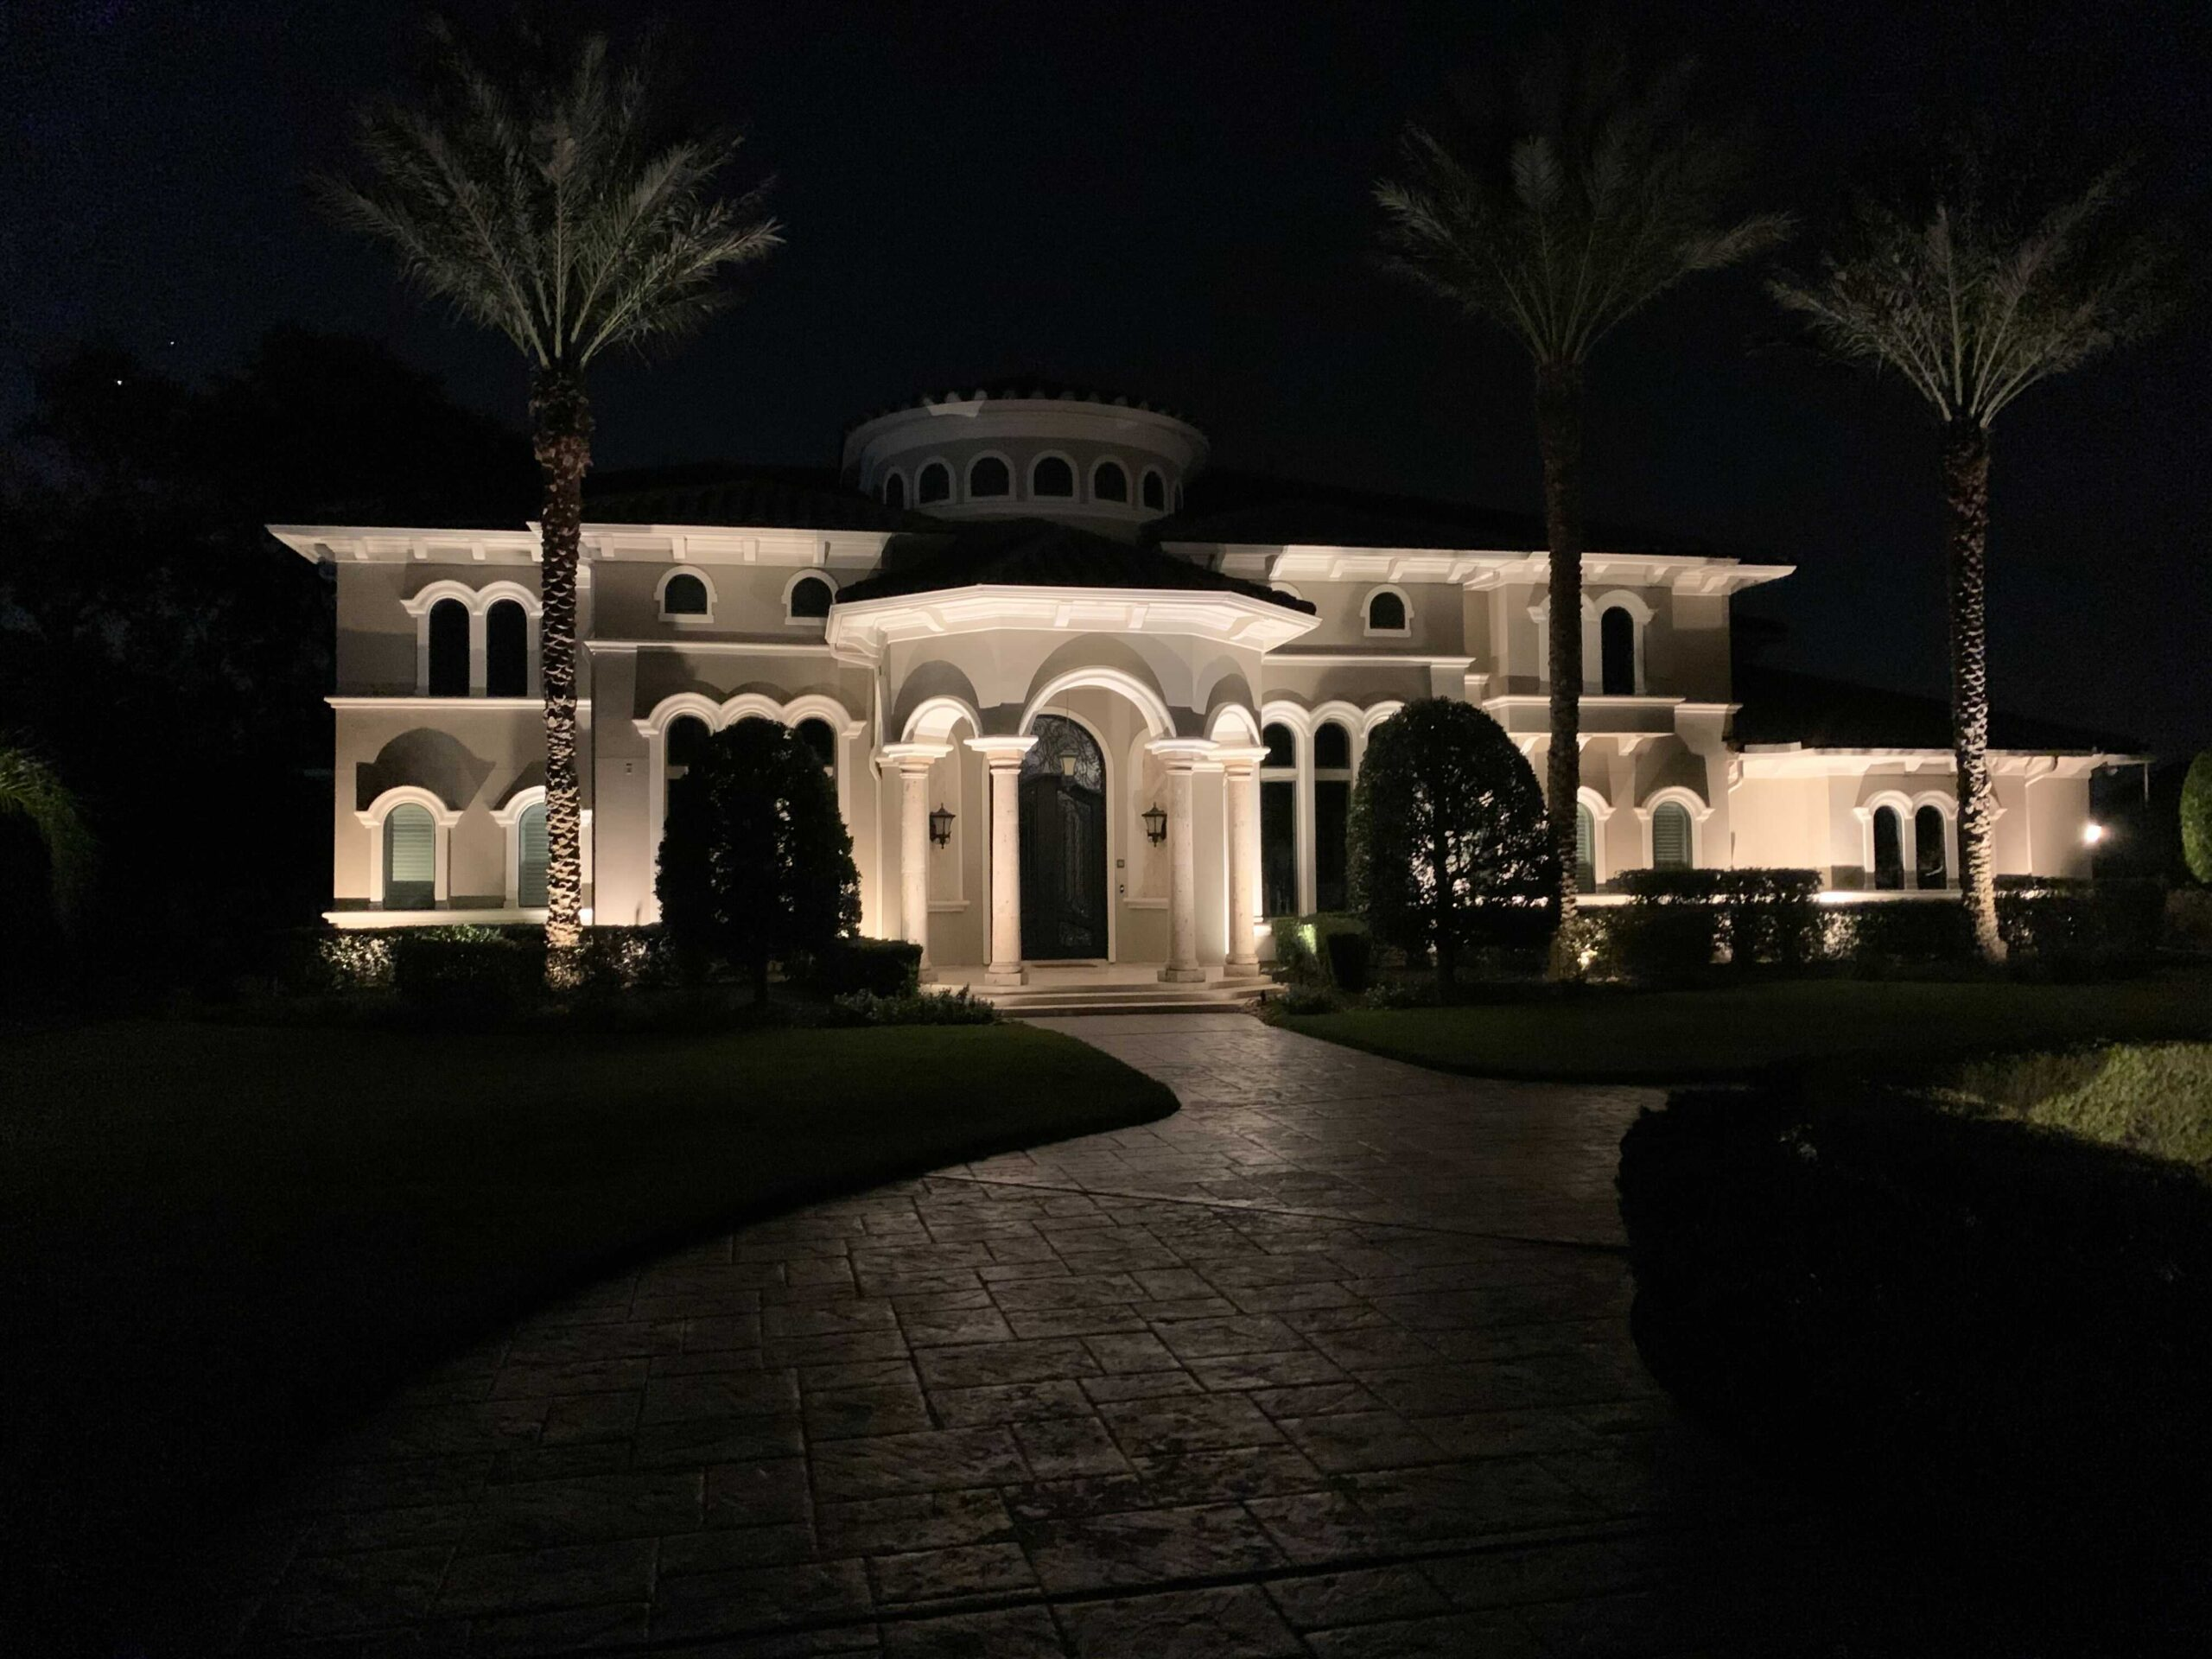 The Woodlands Houston Home lit up at night with columns over an arched front door and 3 palm trees in front